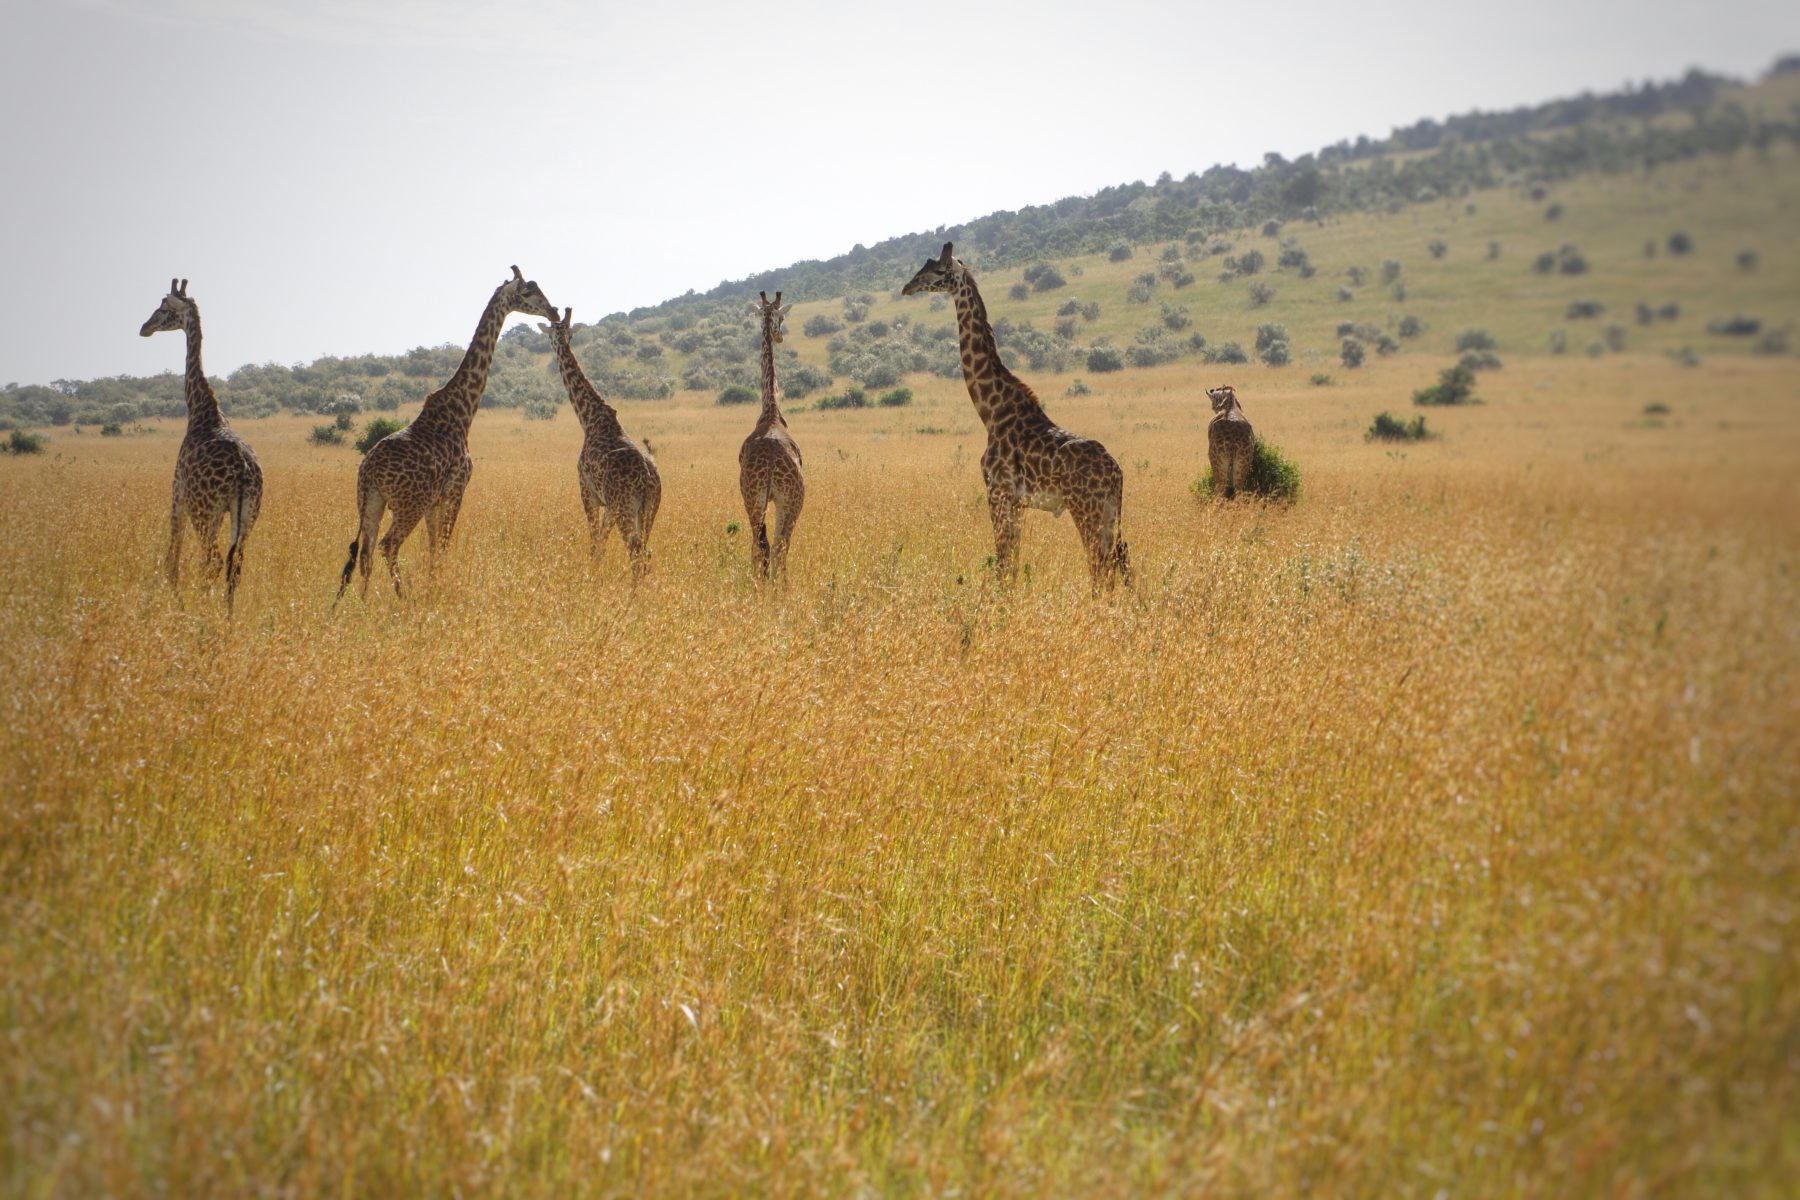 Hunting out the Best East African Safari - Kenya vs